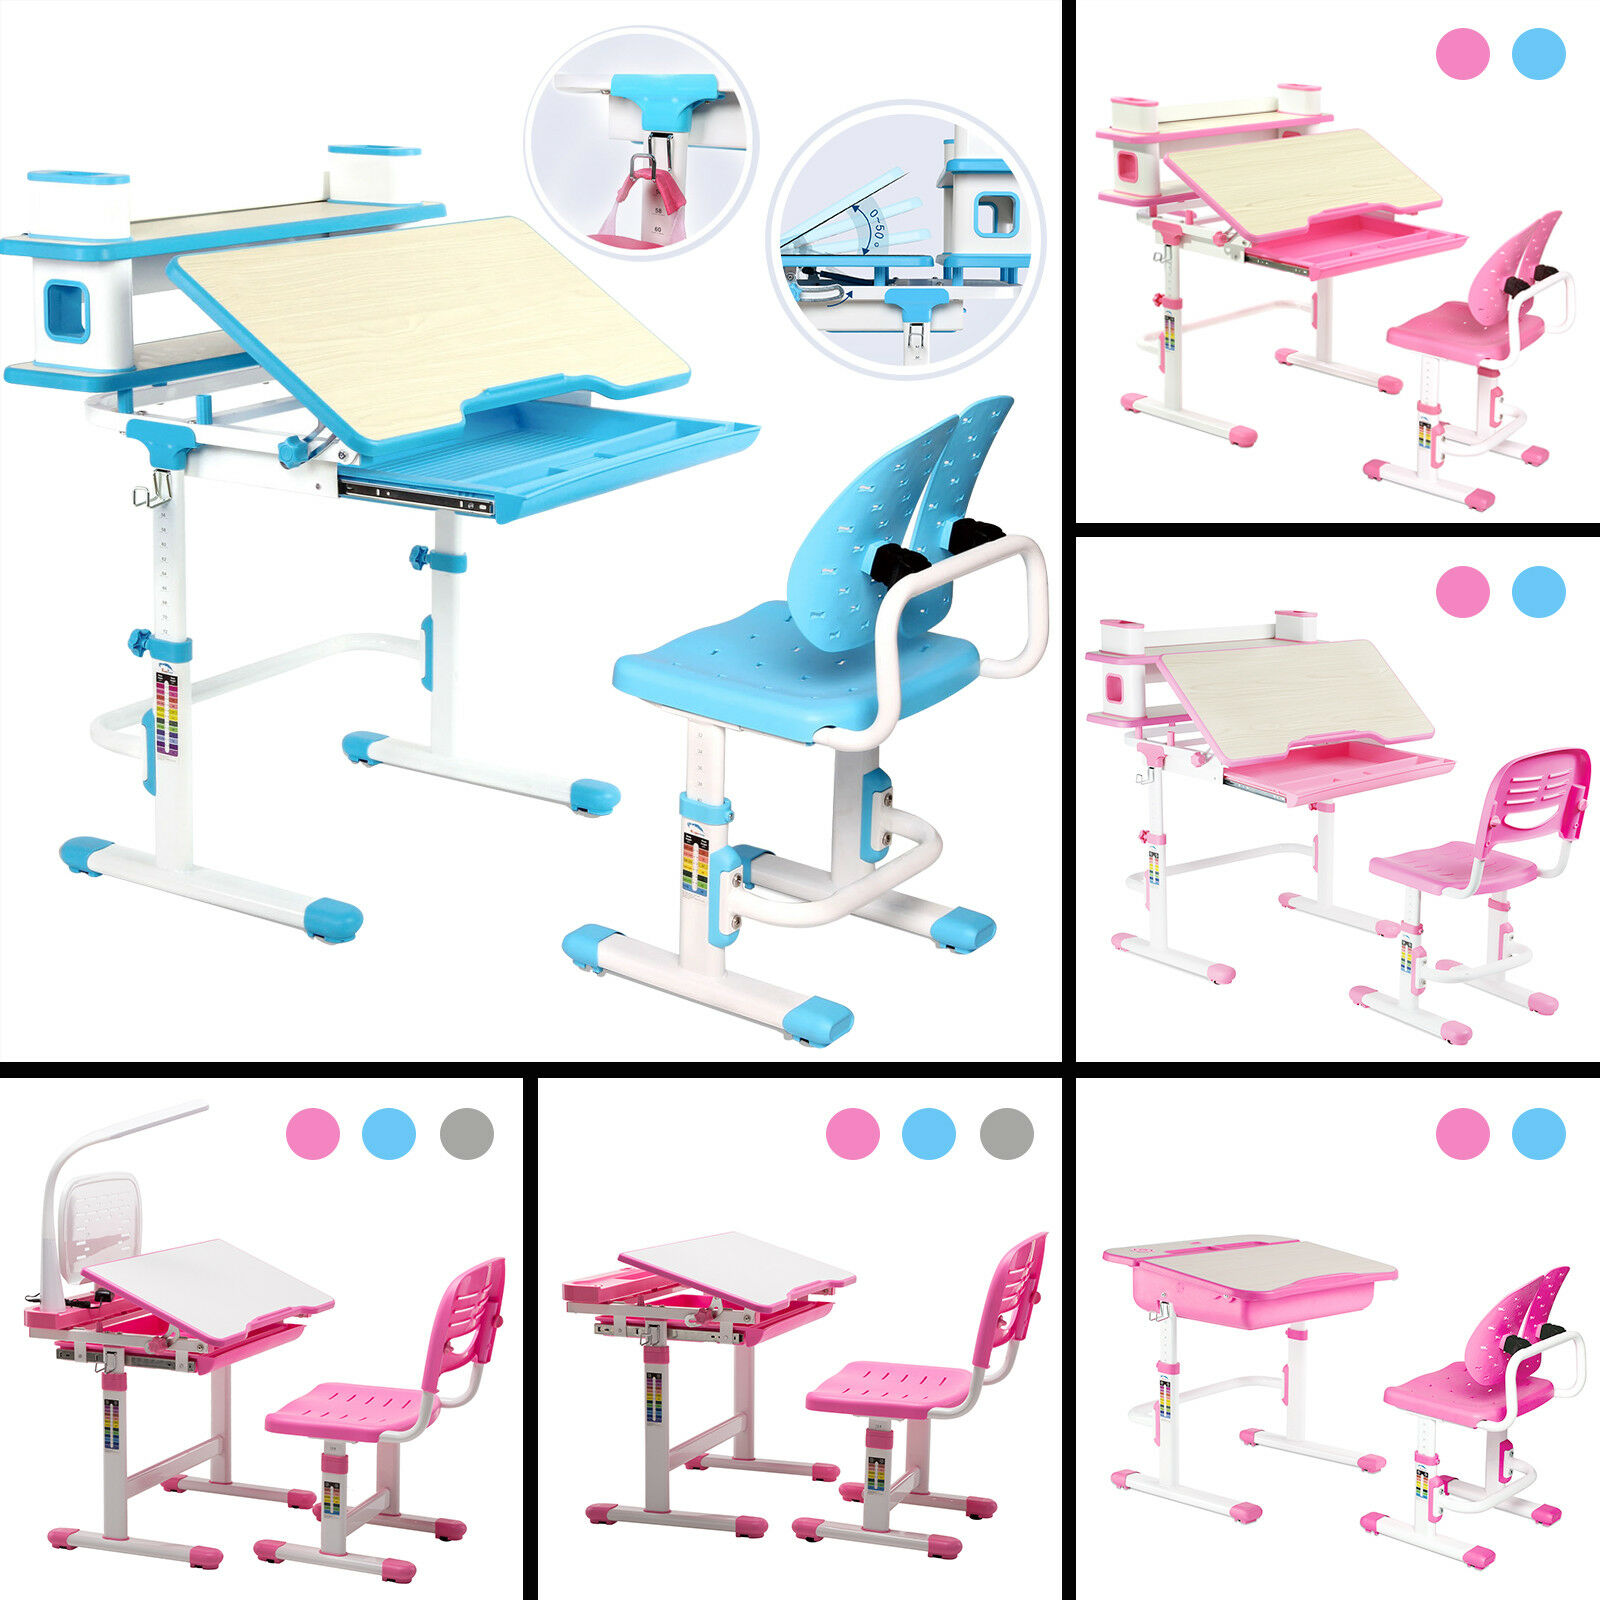 Adjule Children S Desk And Chair Set Kids Study Table Lamp 3 Colors 1 Of 12free Shipping See More